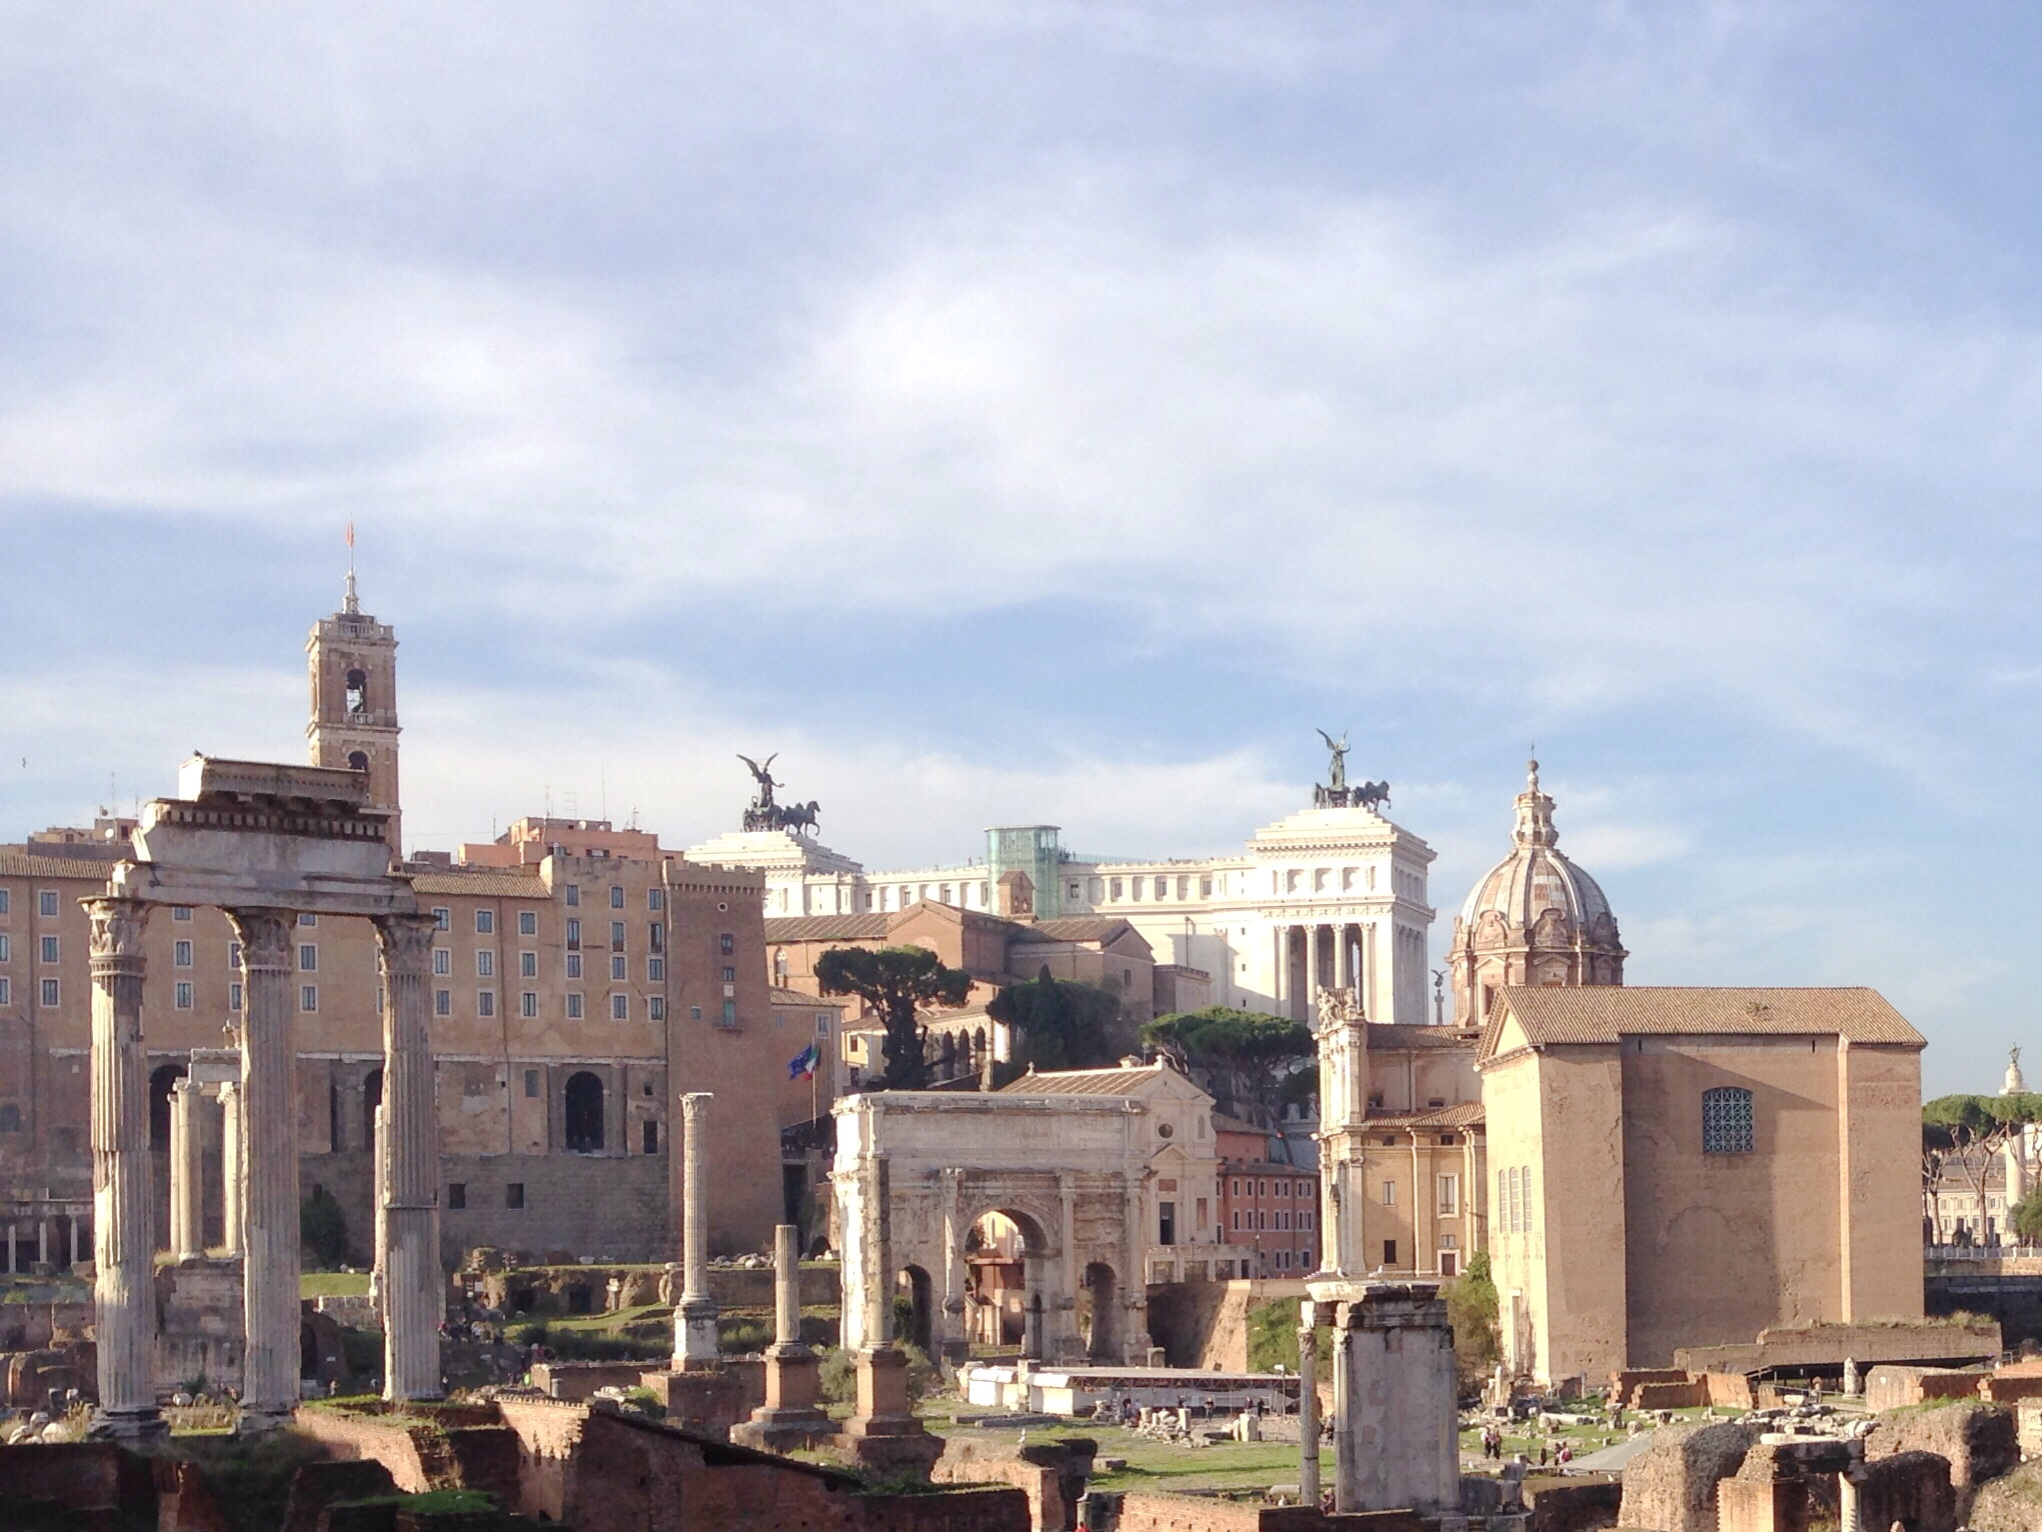 Views of the temple of Castor and Pollux, hearth of the Vestal Virgins, and Arch of Septimius Severus in the Roman Forum in Rome, Italy.